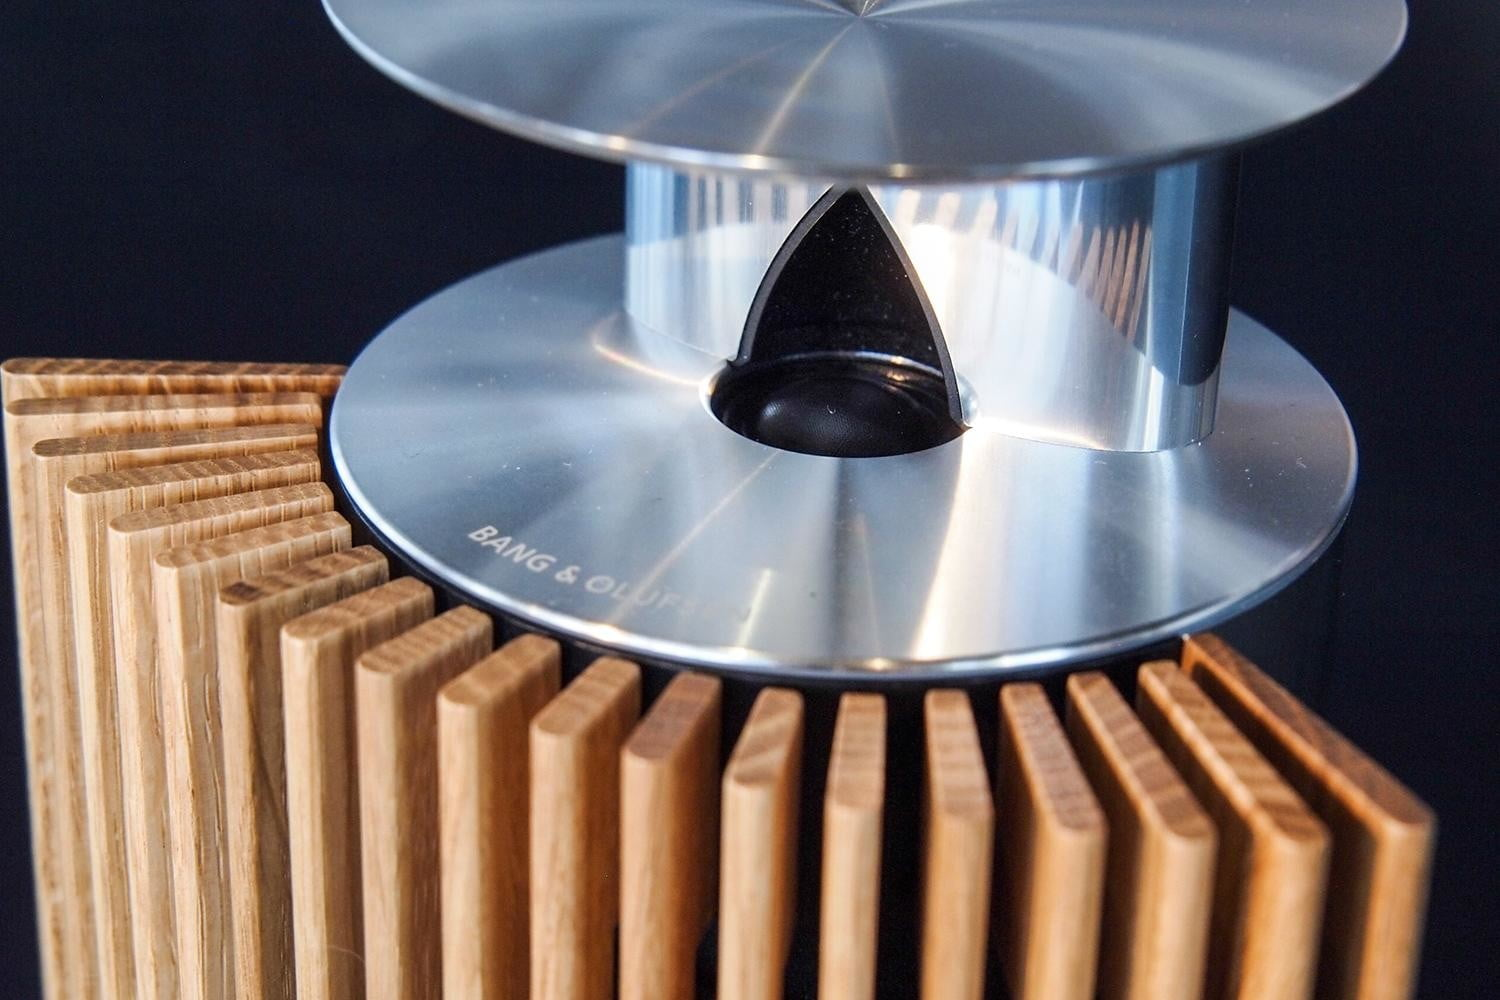 Bang Olufsen BeoLab 18 grill